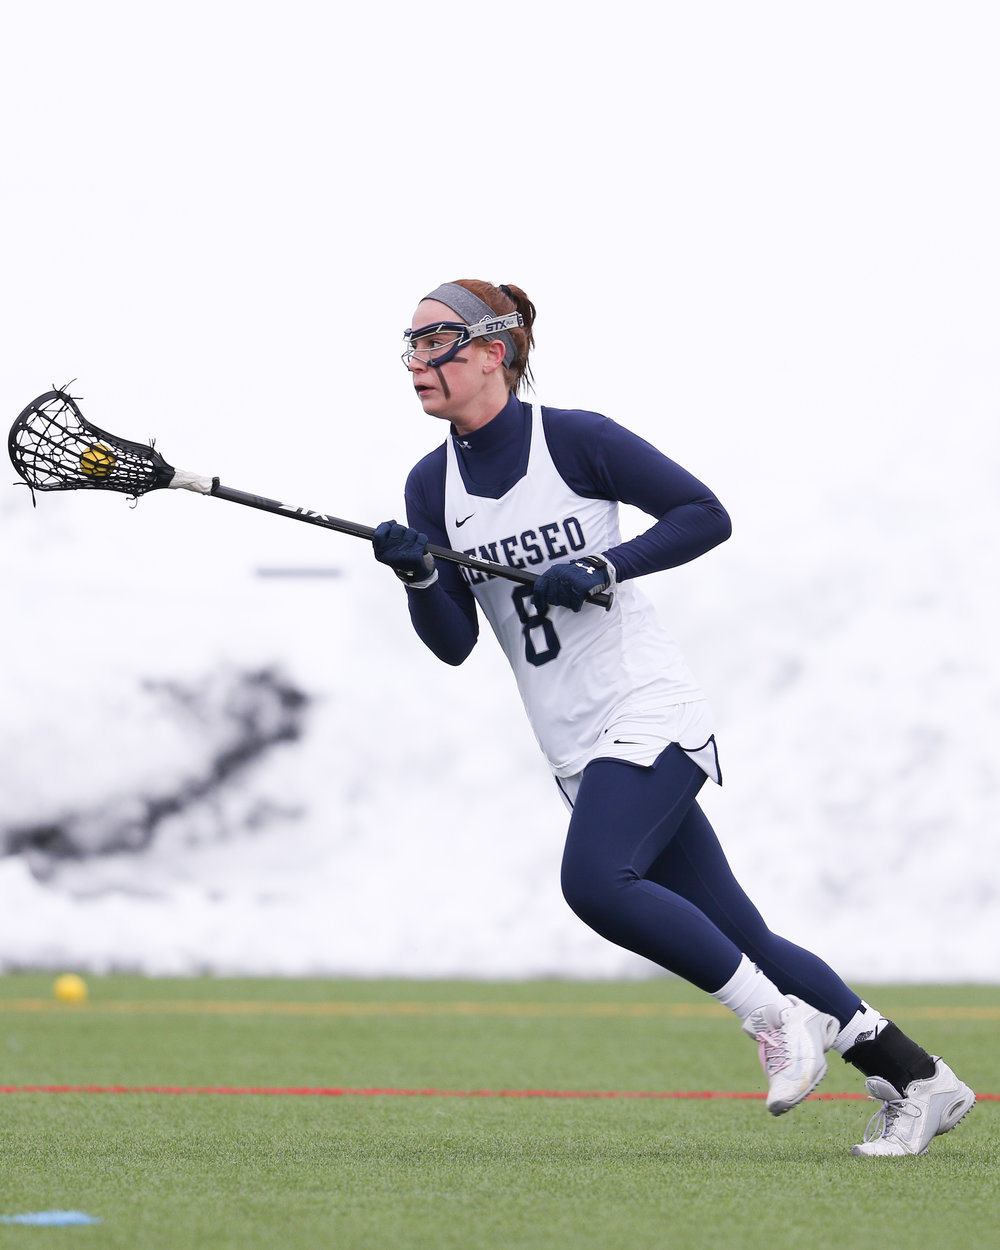 Senior midfielder Erin Cregan (pictured above) runs up the field in search of the net during a game against the University of Rochester on March 8. The women have a seven game win streak that they hope to continue as they face SUNY Oneonta on Saturday March 31. ()